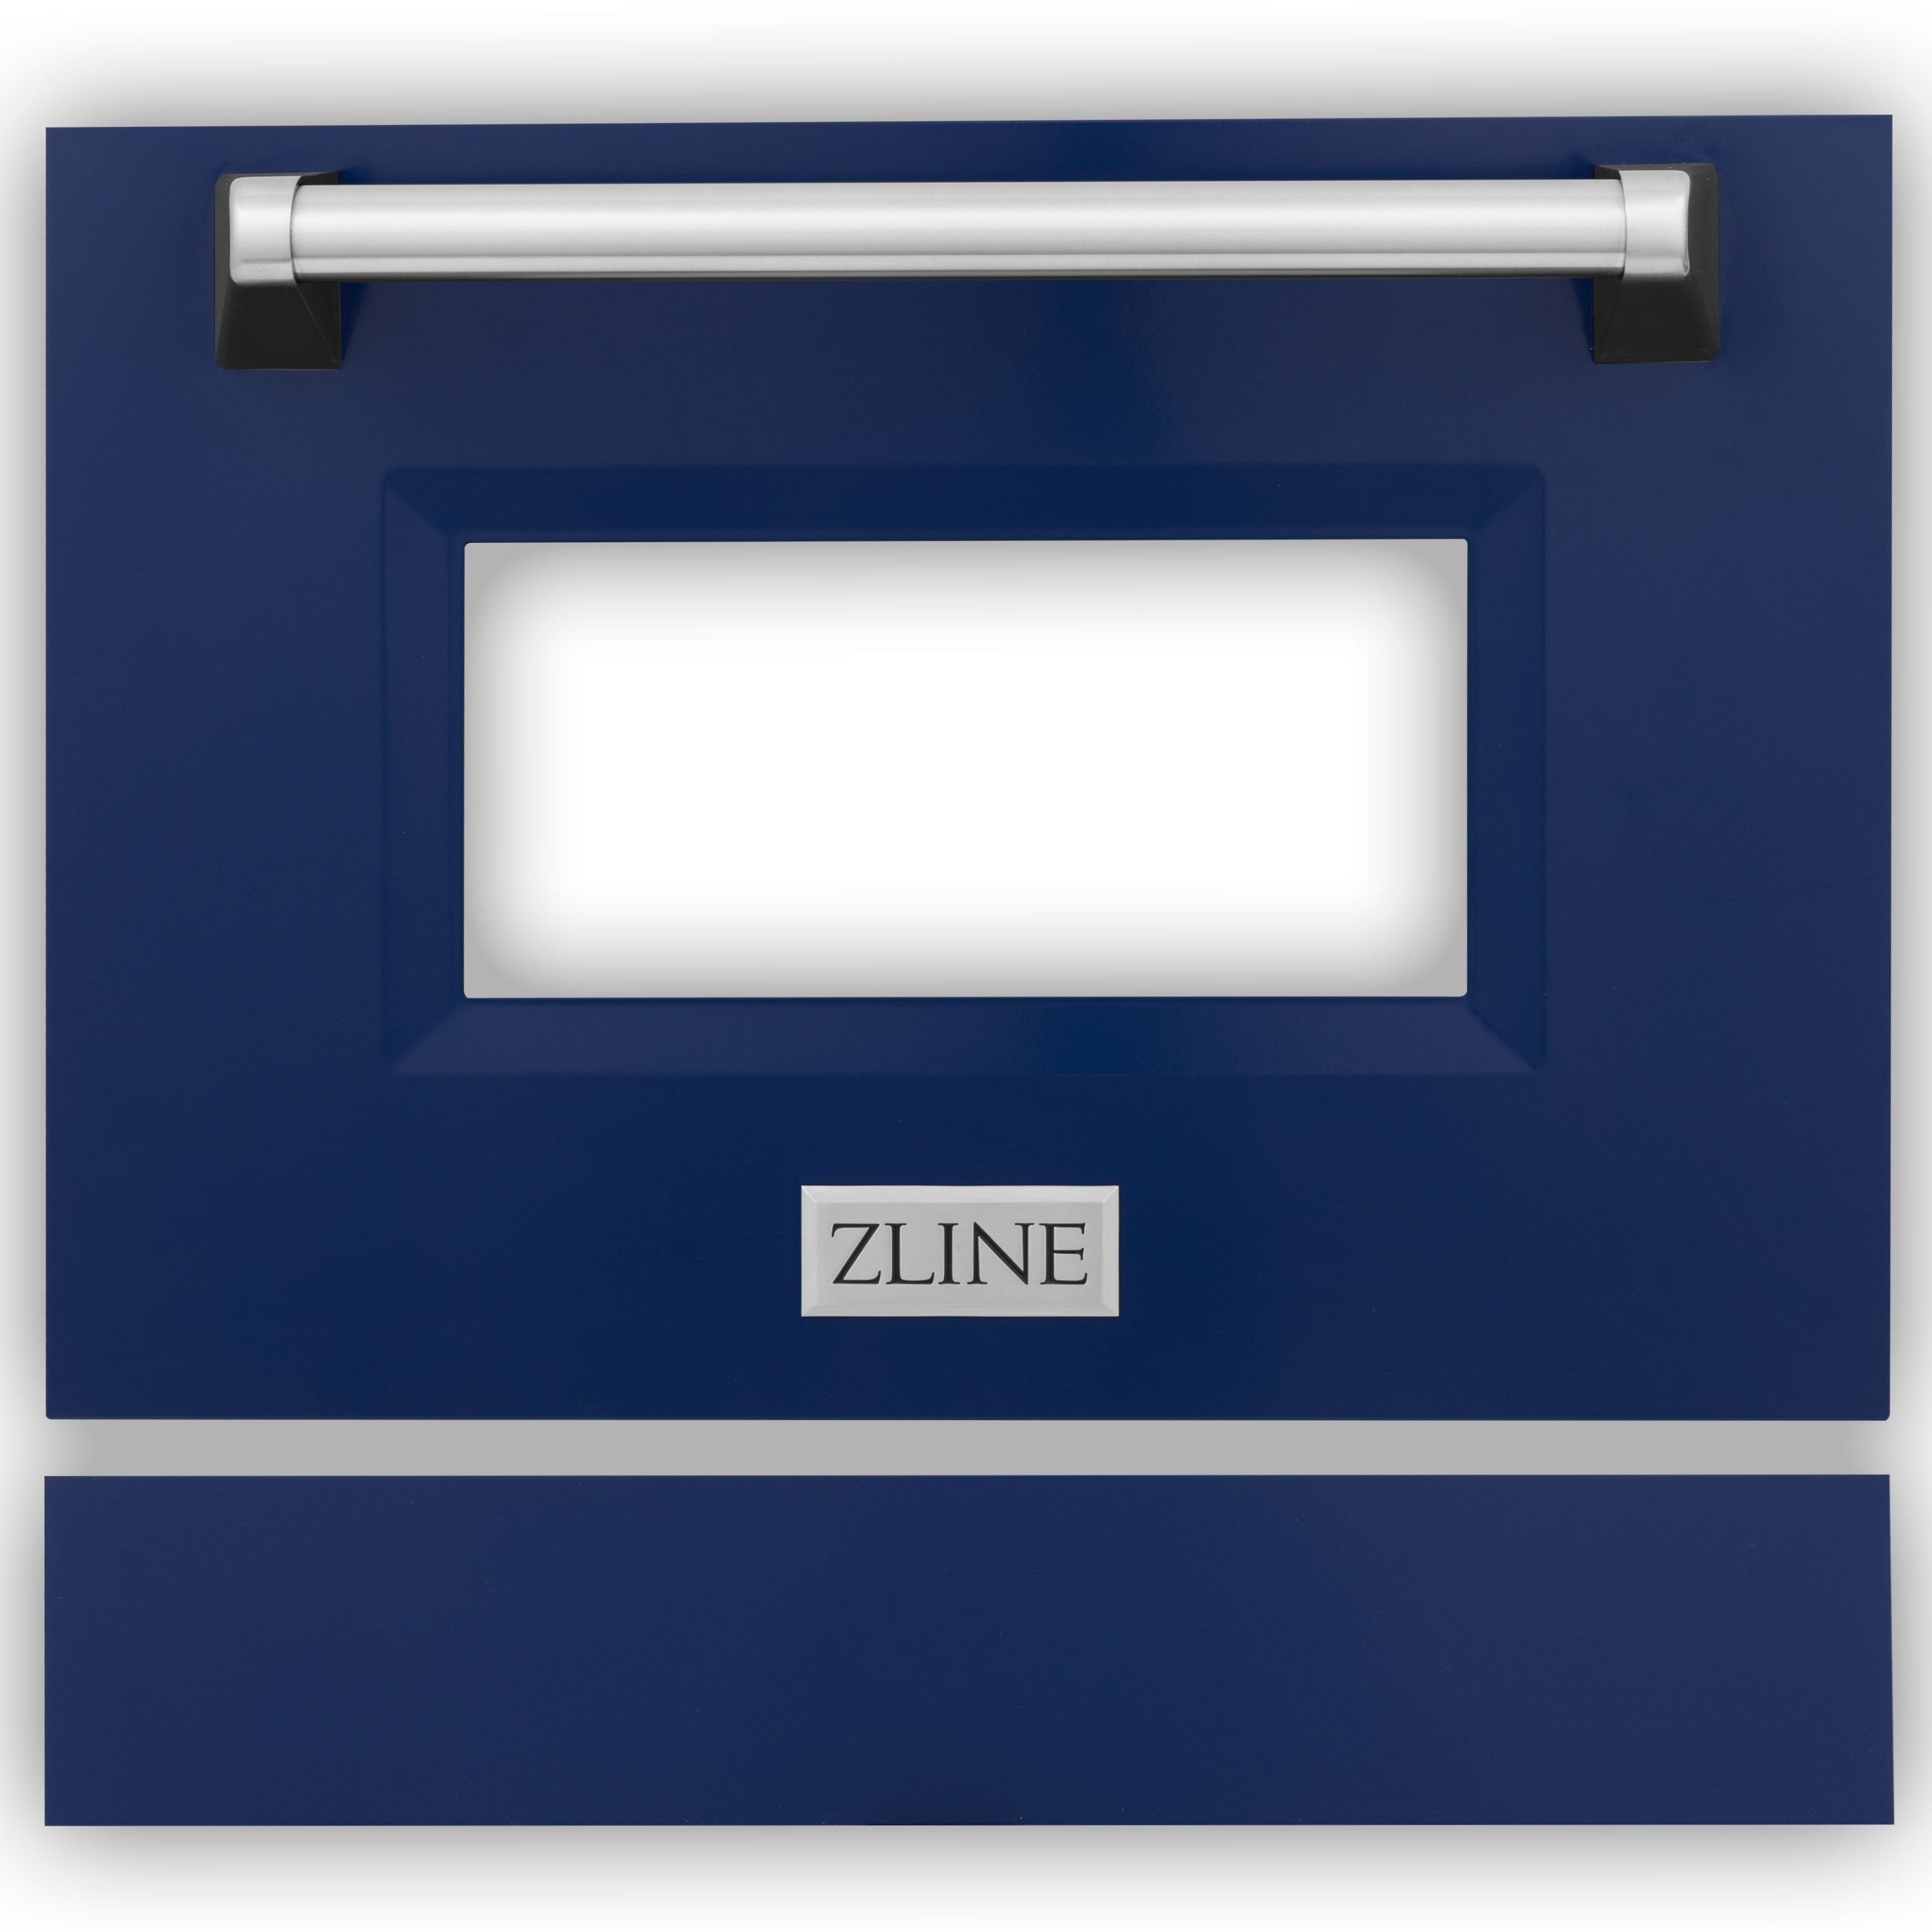 "ZLINE 24"" Range Door in Multiple Finishes"